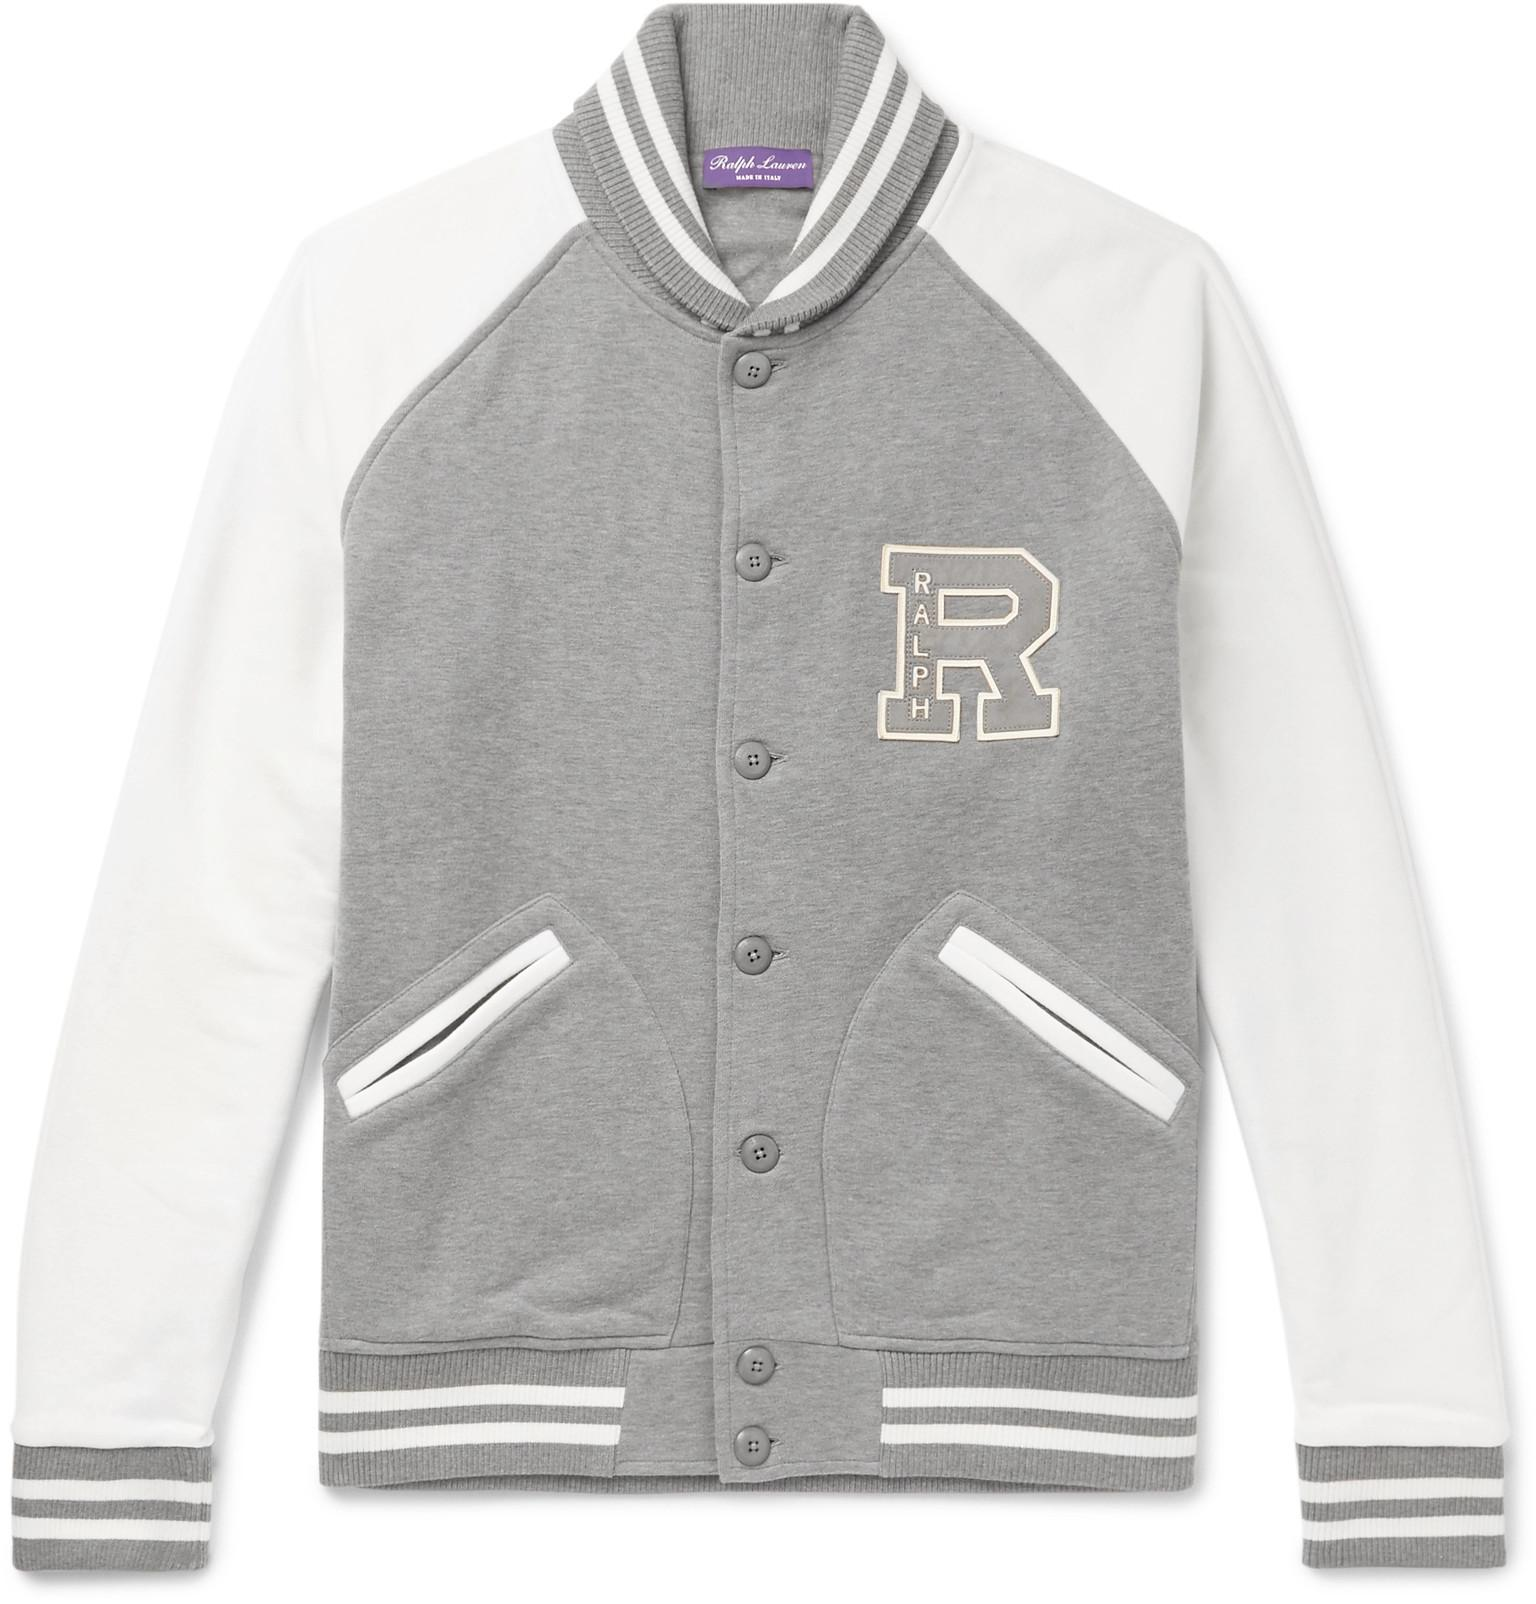 671db390 Ralph Lauren Purple Label Cotton Fleece Letterman Jacket in Gray for ...